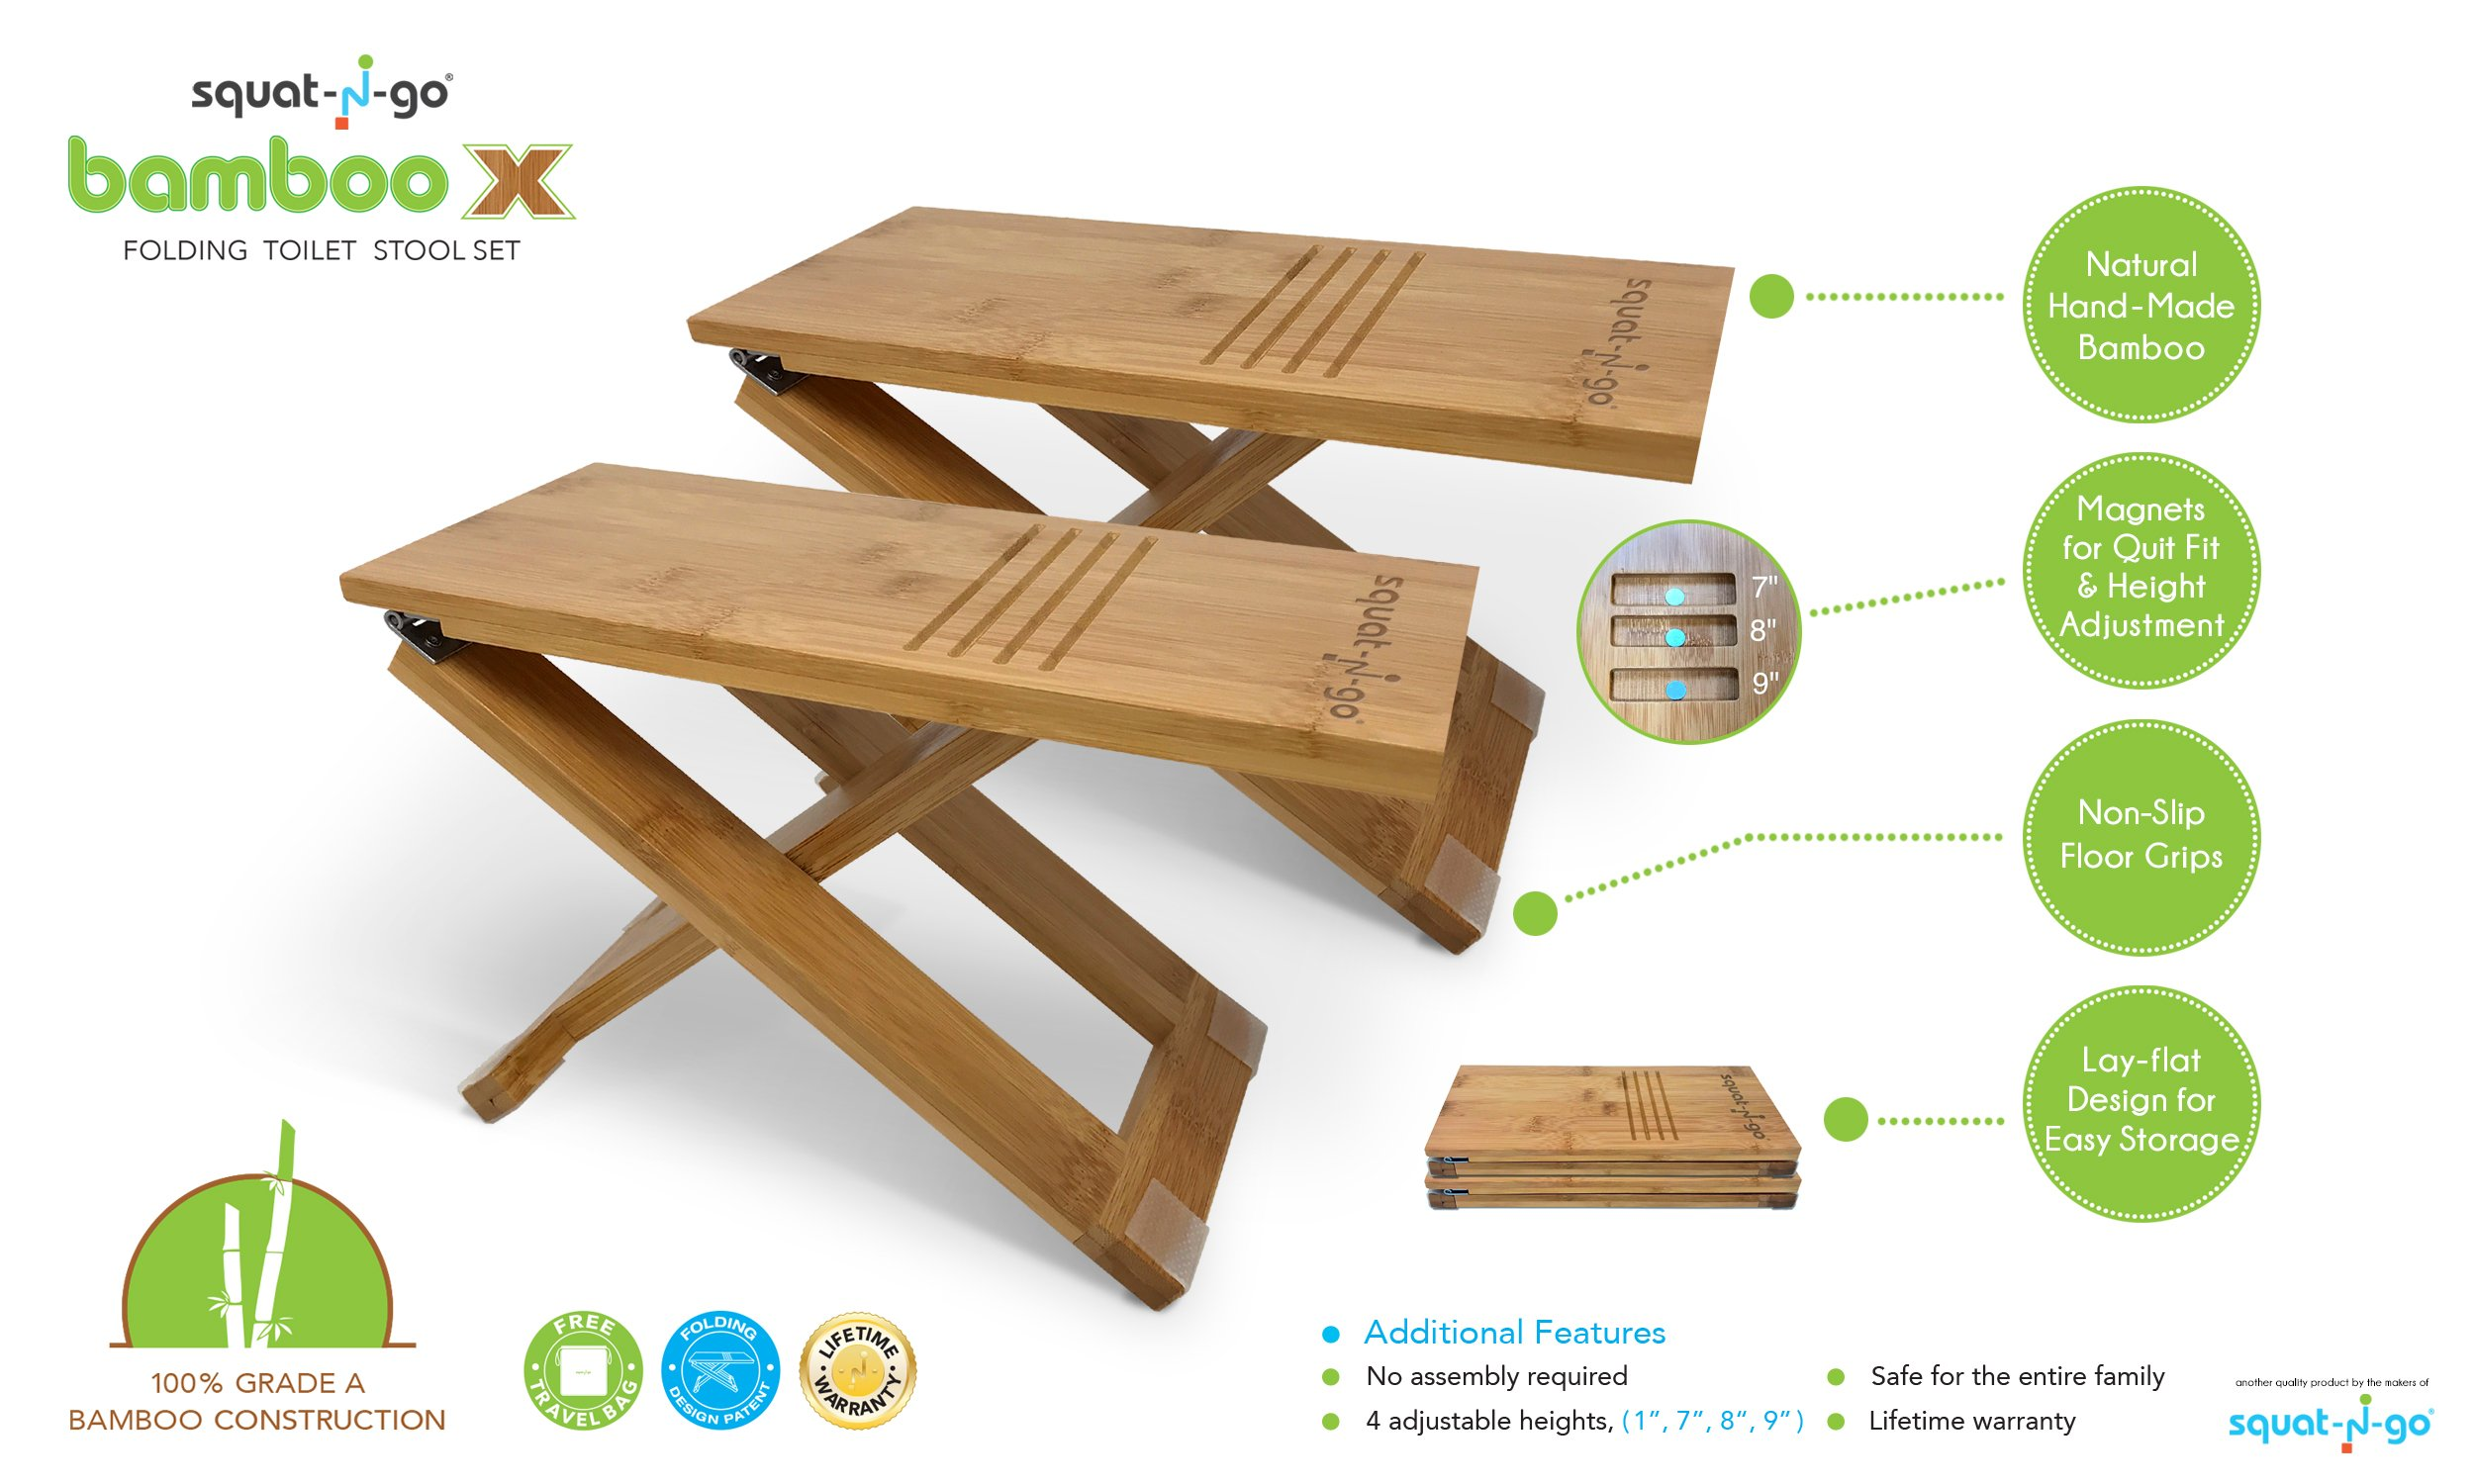 Squat N Go Bamboo X Toilet Stool | Fully Adjustable, Ultra Portable & Eco Friendly | Bonus Travel Bag Included by Squat N Go (Image #2)